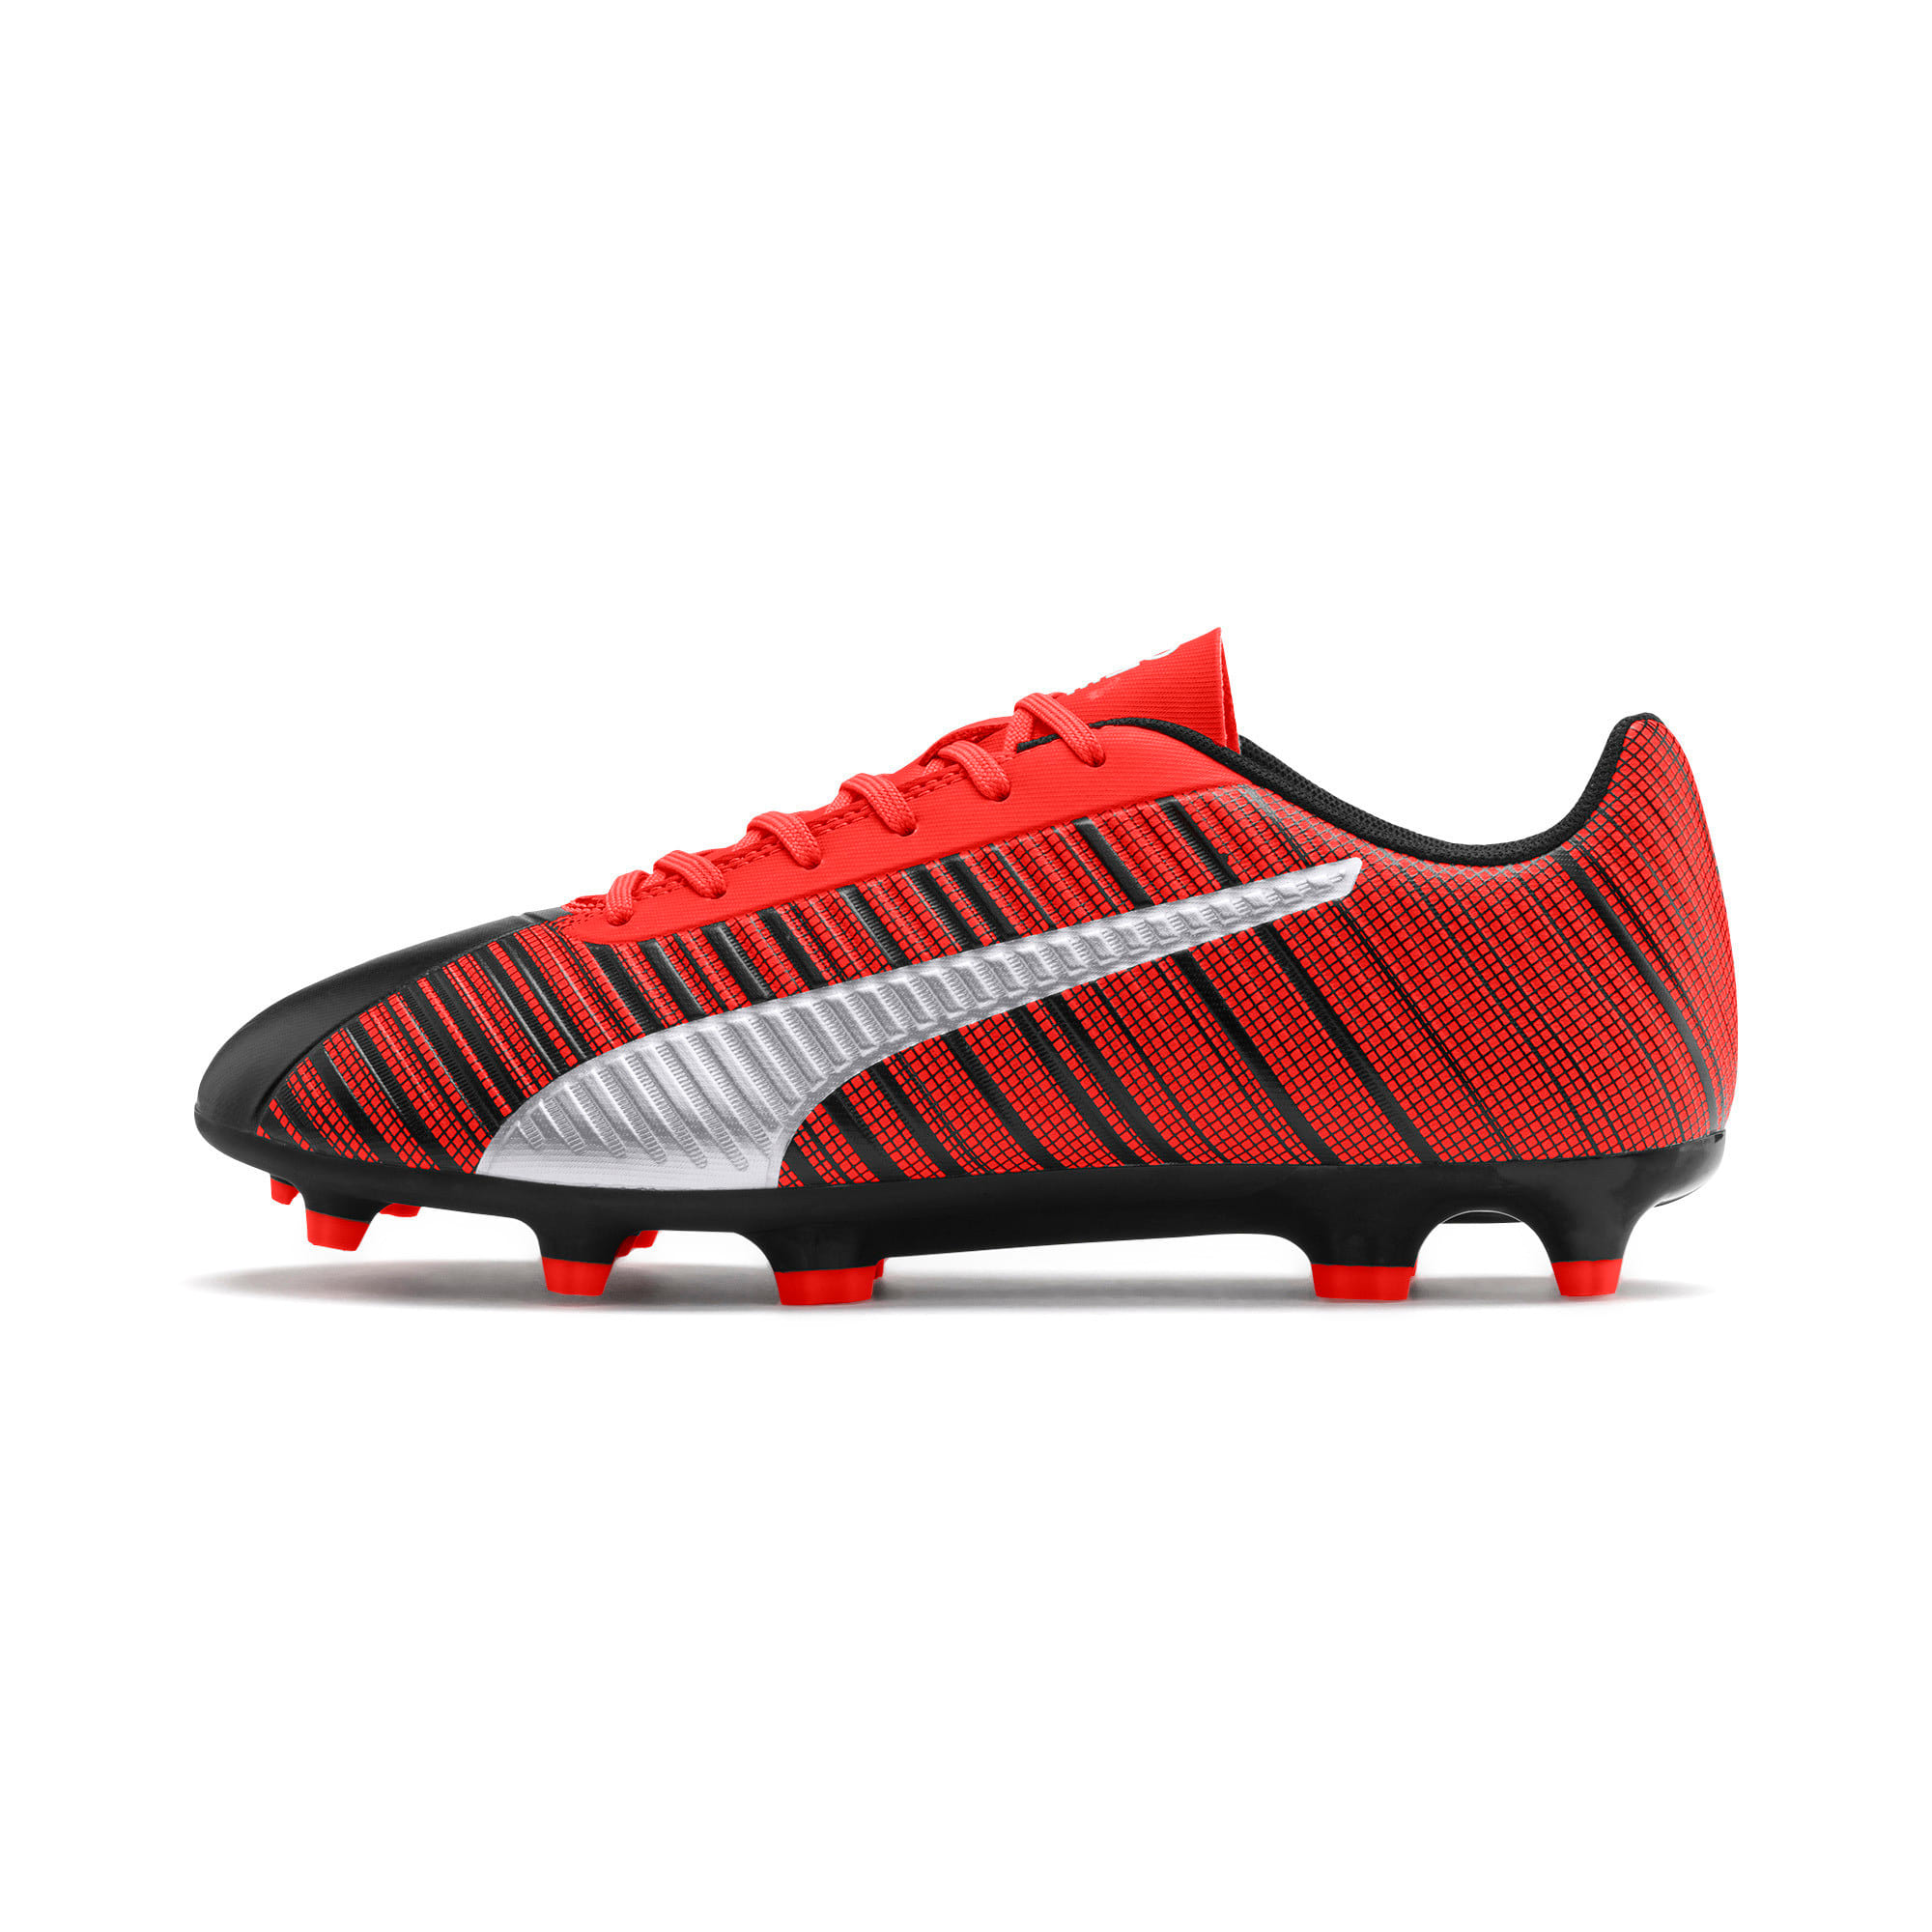 Thumbnail 1 van PUMA ONE 5.4 FG/AG voetbalschoenen voor mannen, Black-Nrgy Red-Aged Silver, medium